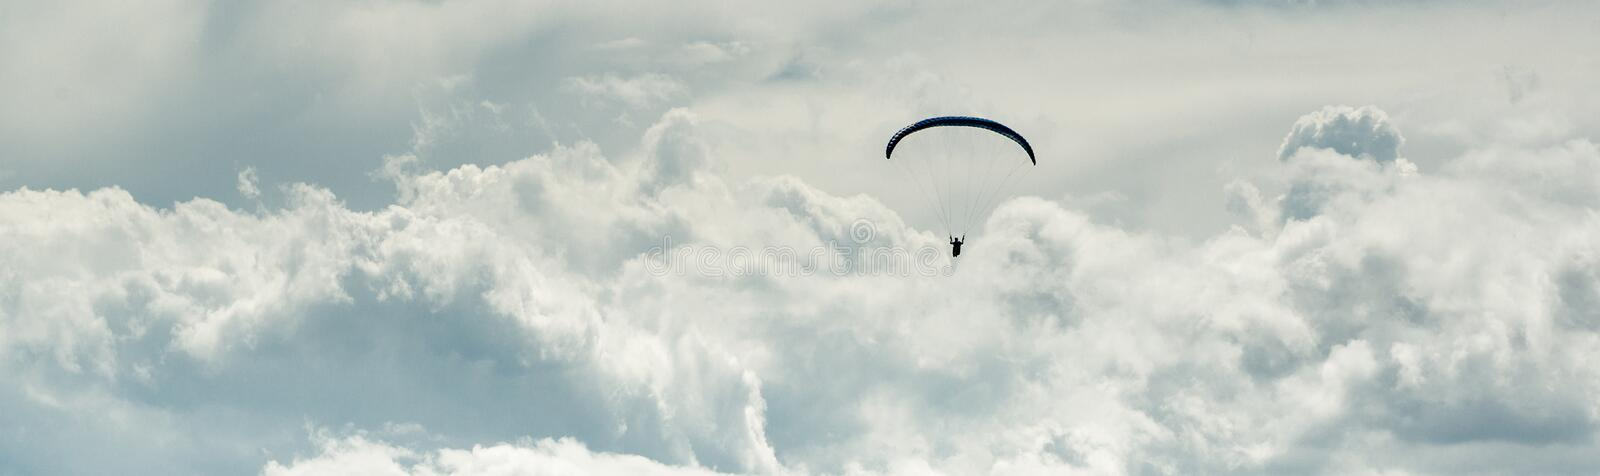 Horizontal cropped image paraglider over cloudy sky background royalty free stock image